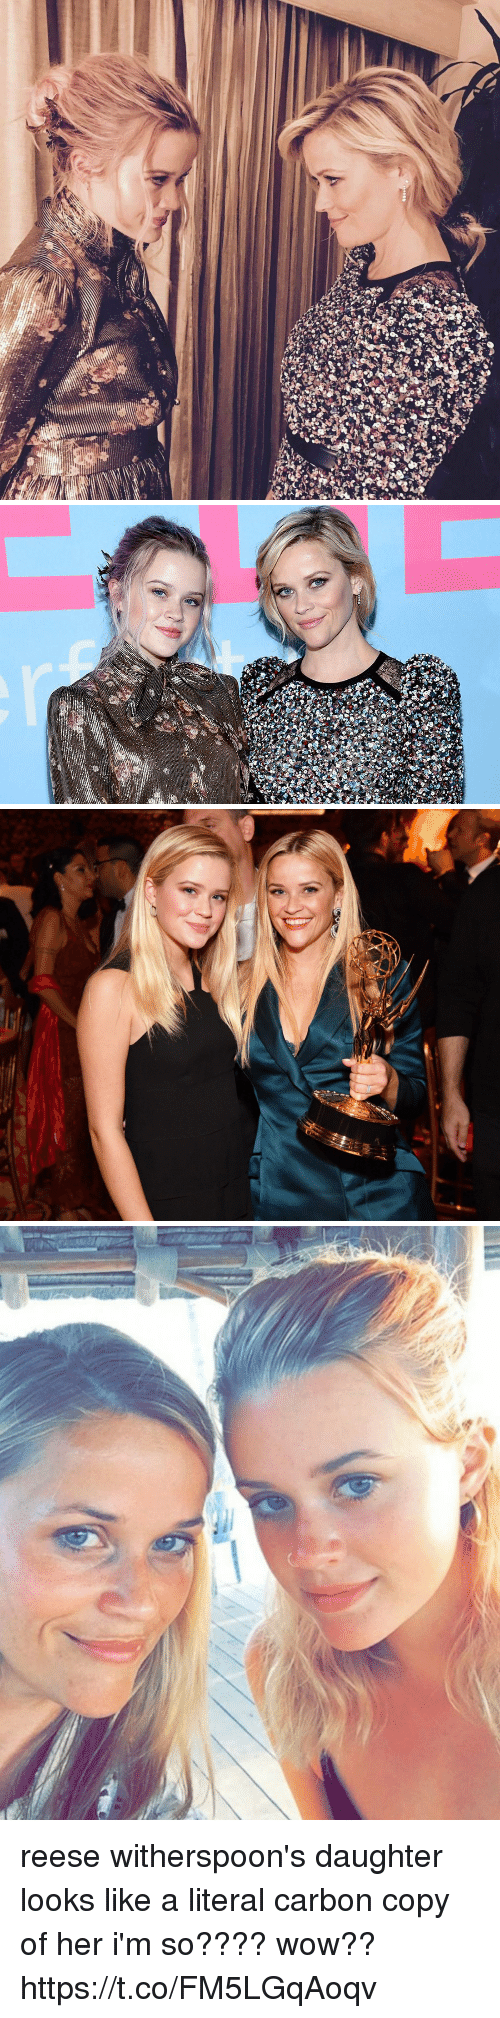 Wow, Girl Memes, and Her: reese witherspoon's daughter looks like a literal carbon copy of her i'm so???? wow?? https://t.co/FM5LGqAoqv